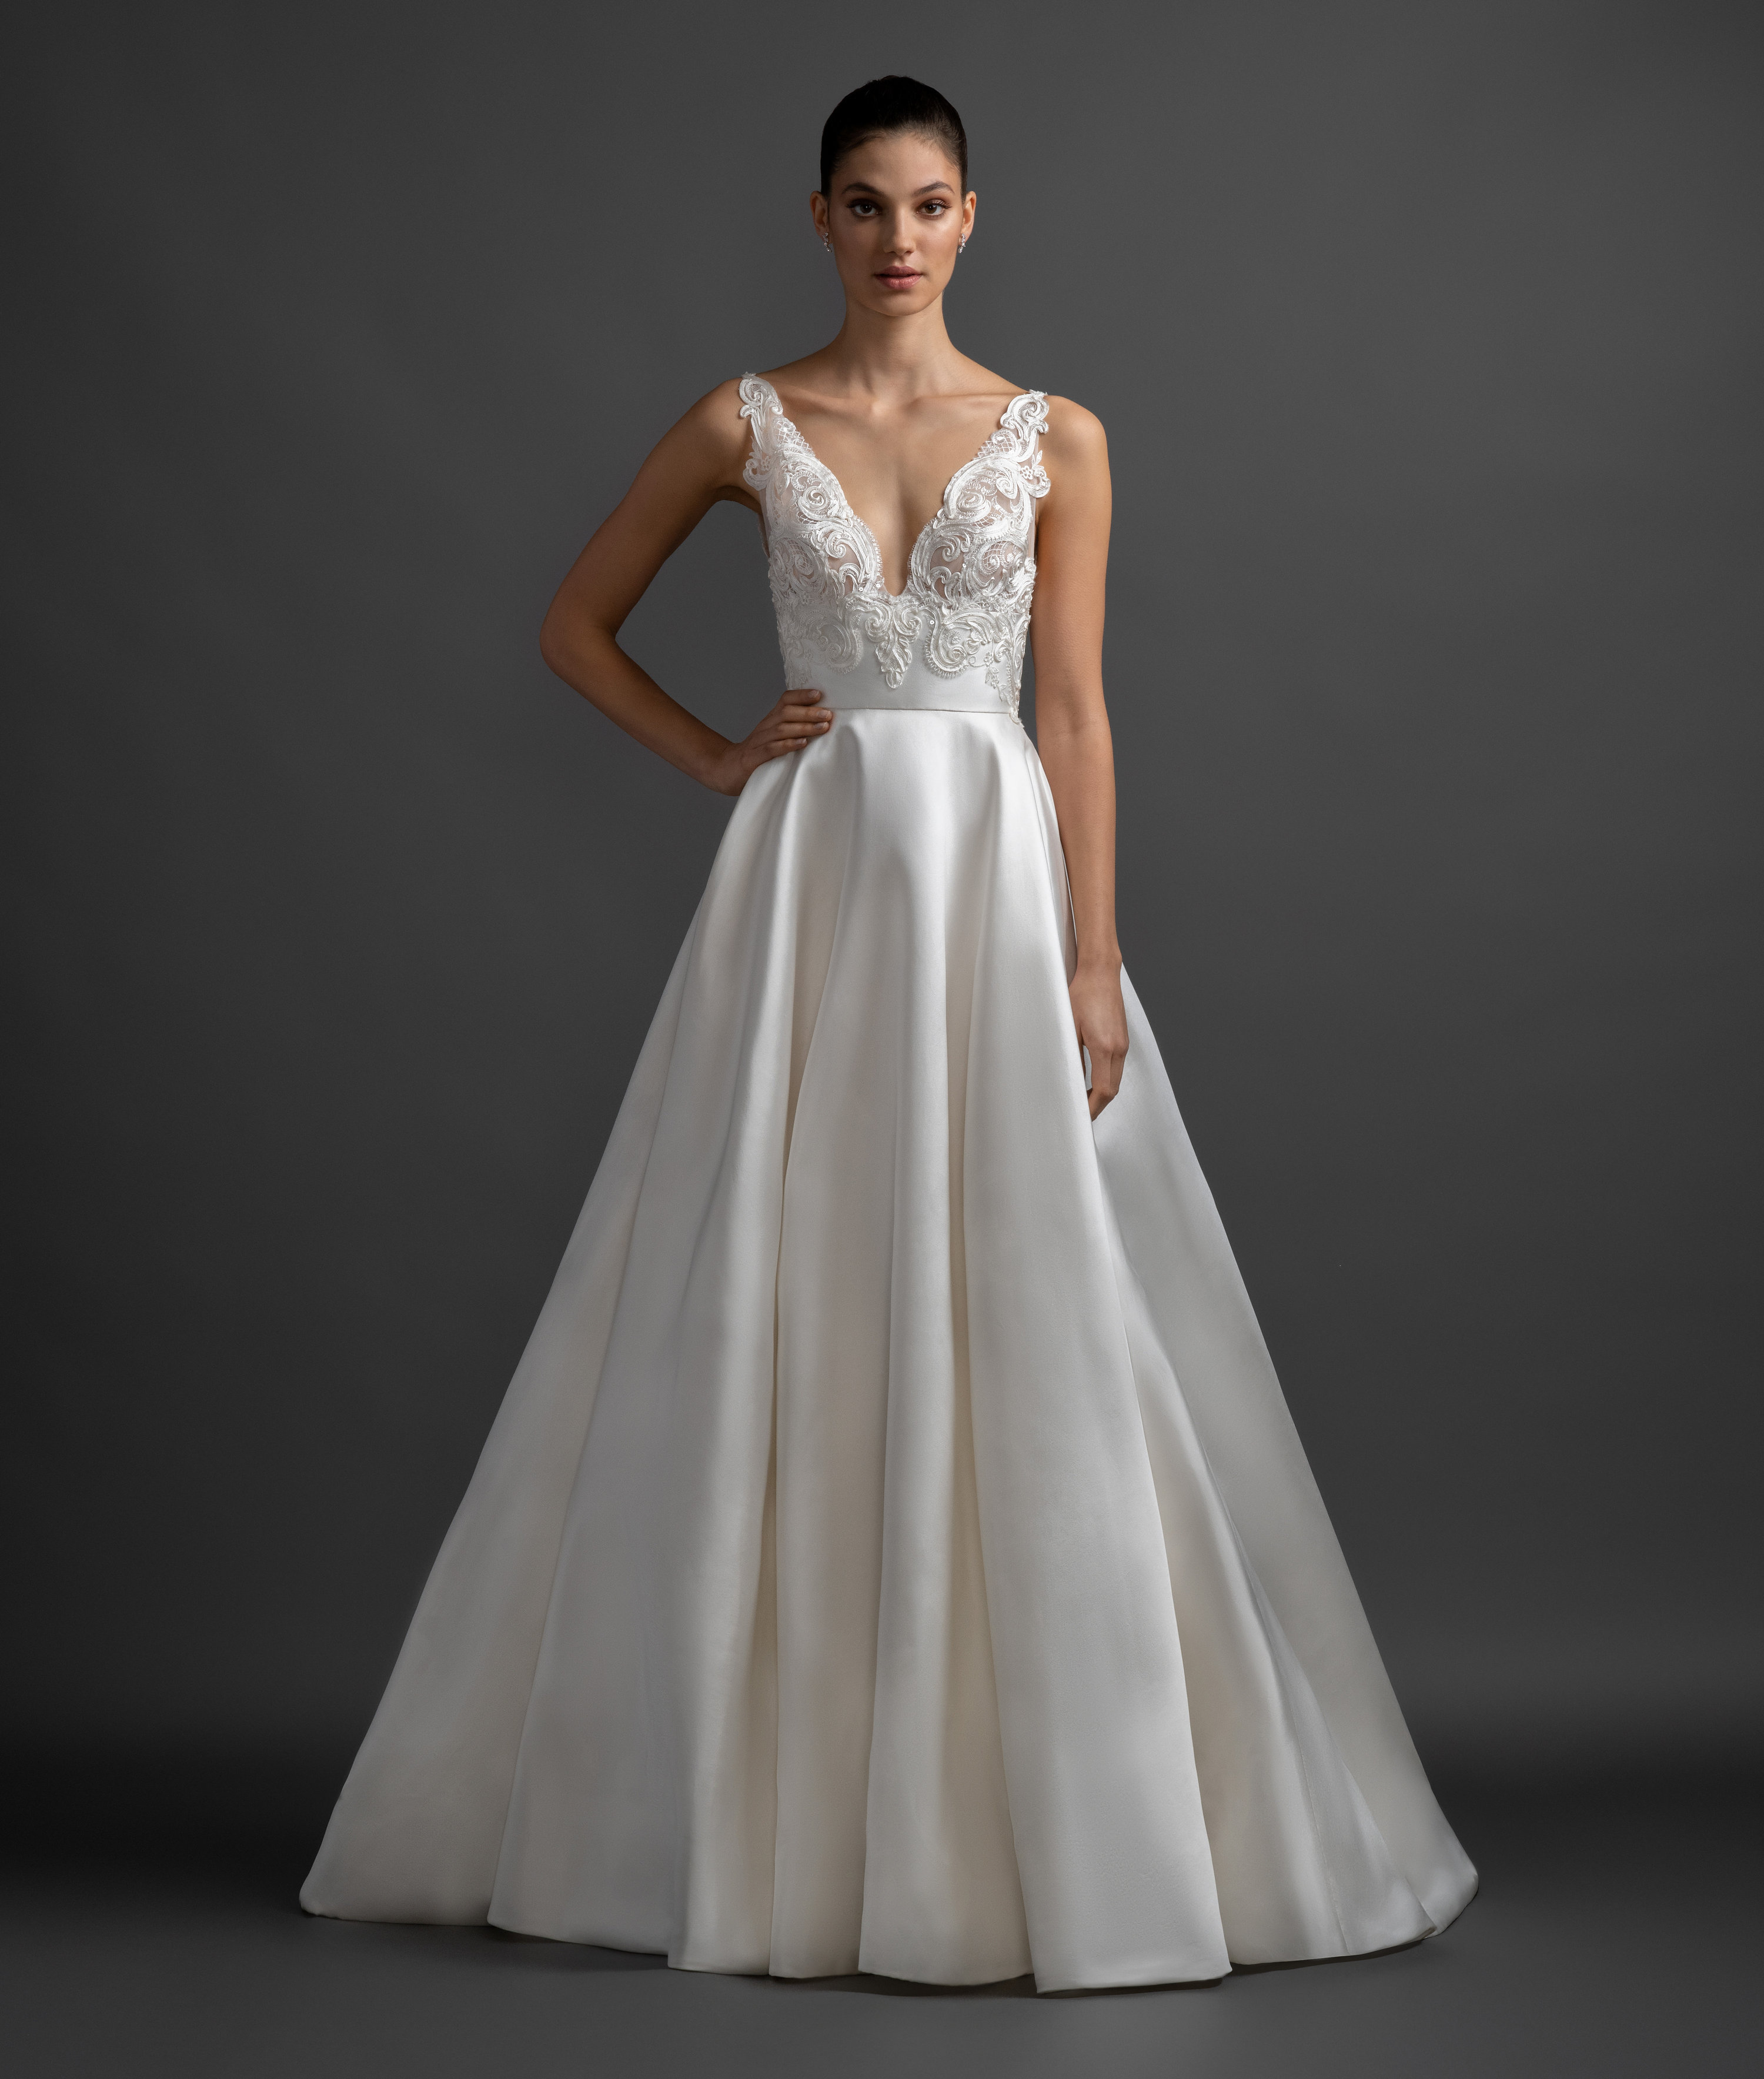 Wedding Gown With Neck Detail: Scalloped V-neck Natural Waist Silk Skirt A-line Wedding